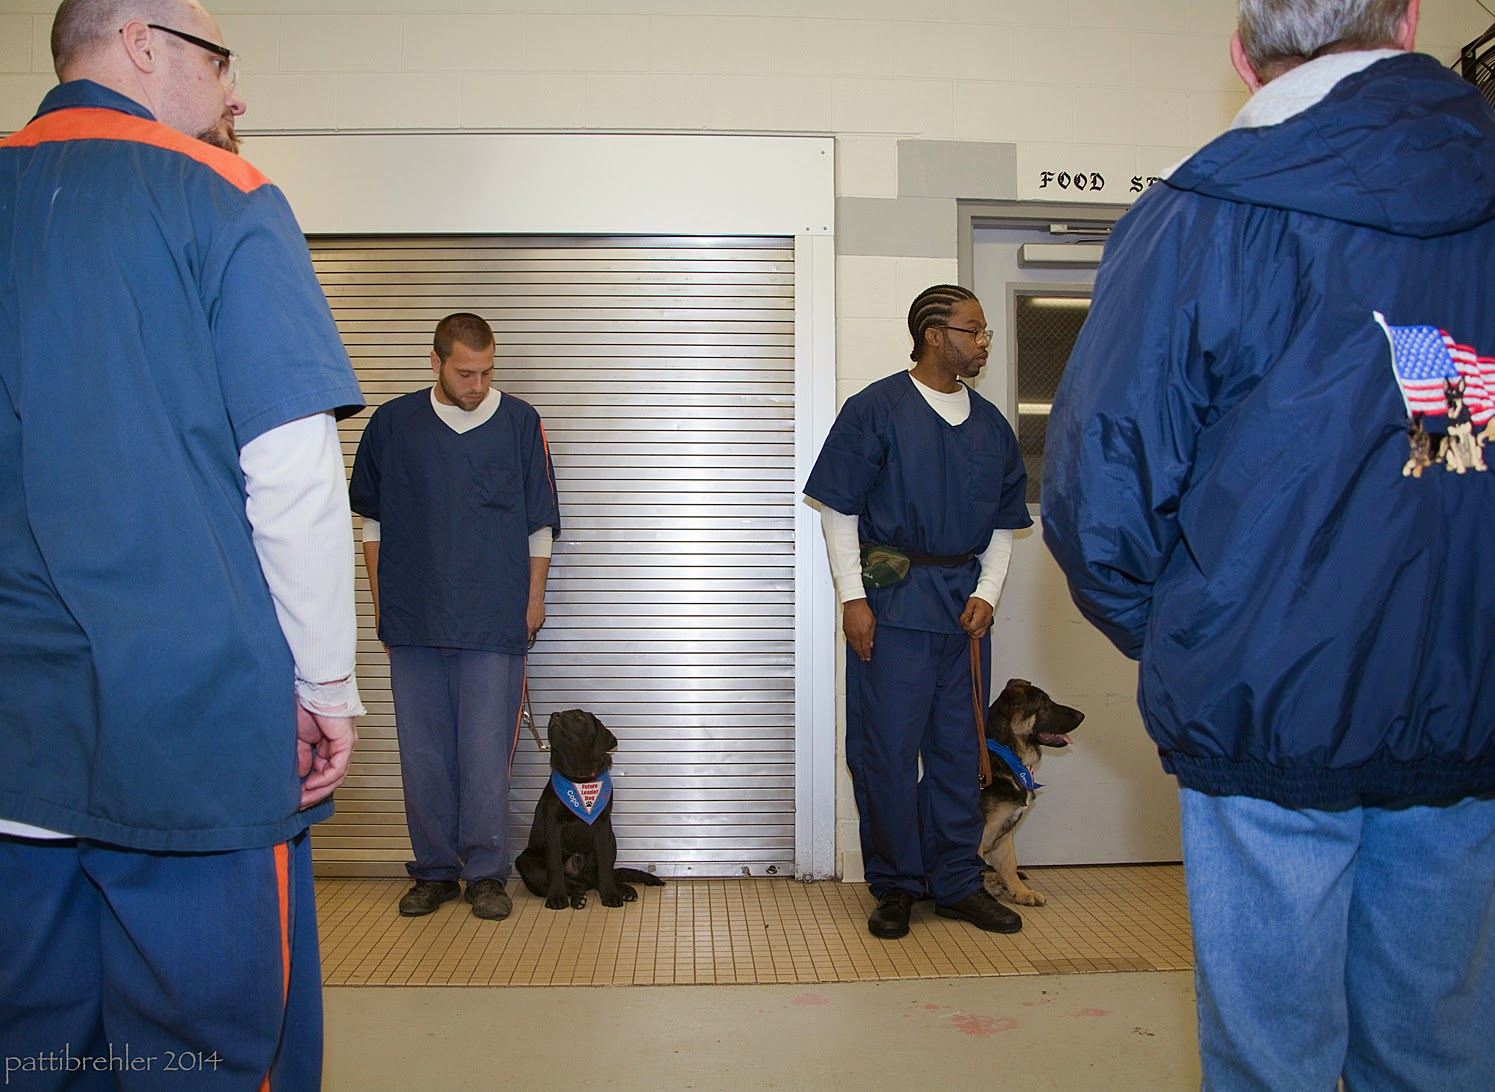 A man dressed in the blue prison uniform is standing on the far left side facing away from the camera; a woman dressed in blue jeans and a blue jacket is standing on the far right facing away from the camaer. In the distance between them are two men dressed in the blue prison uniforms, they are standing against the wall and facing the camera. The man on the left side has a small black lab puppy sitting at his left side looking up at him. The man on the right has a small german shepherd puppy sitting on the floor on his left side, but looking to the right. Both puppies are on leash and are wearing the blue Future Leader Dog bandana.